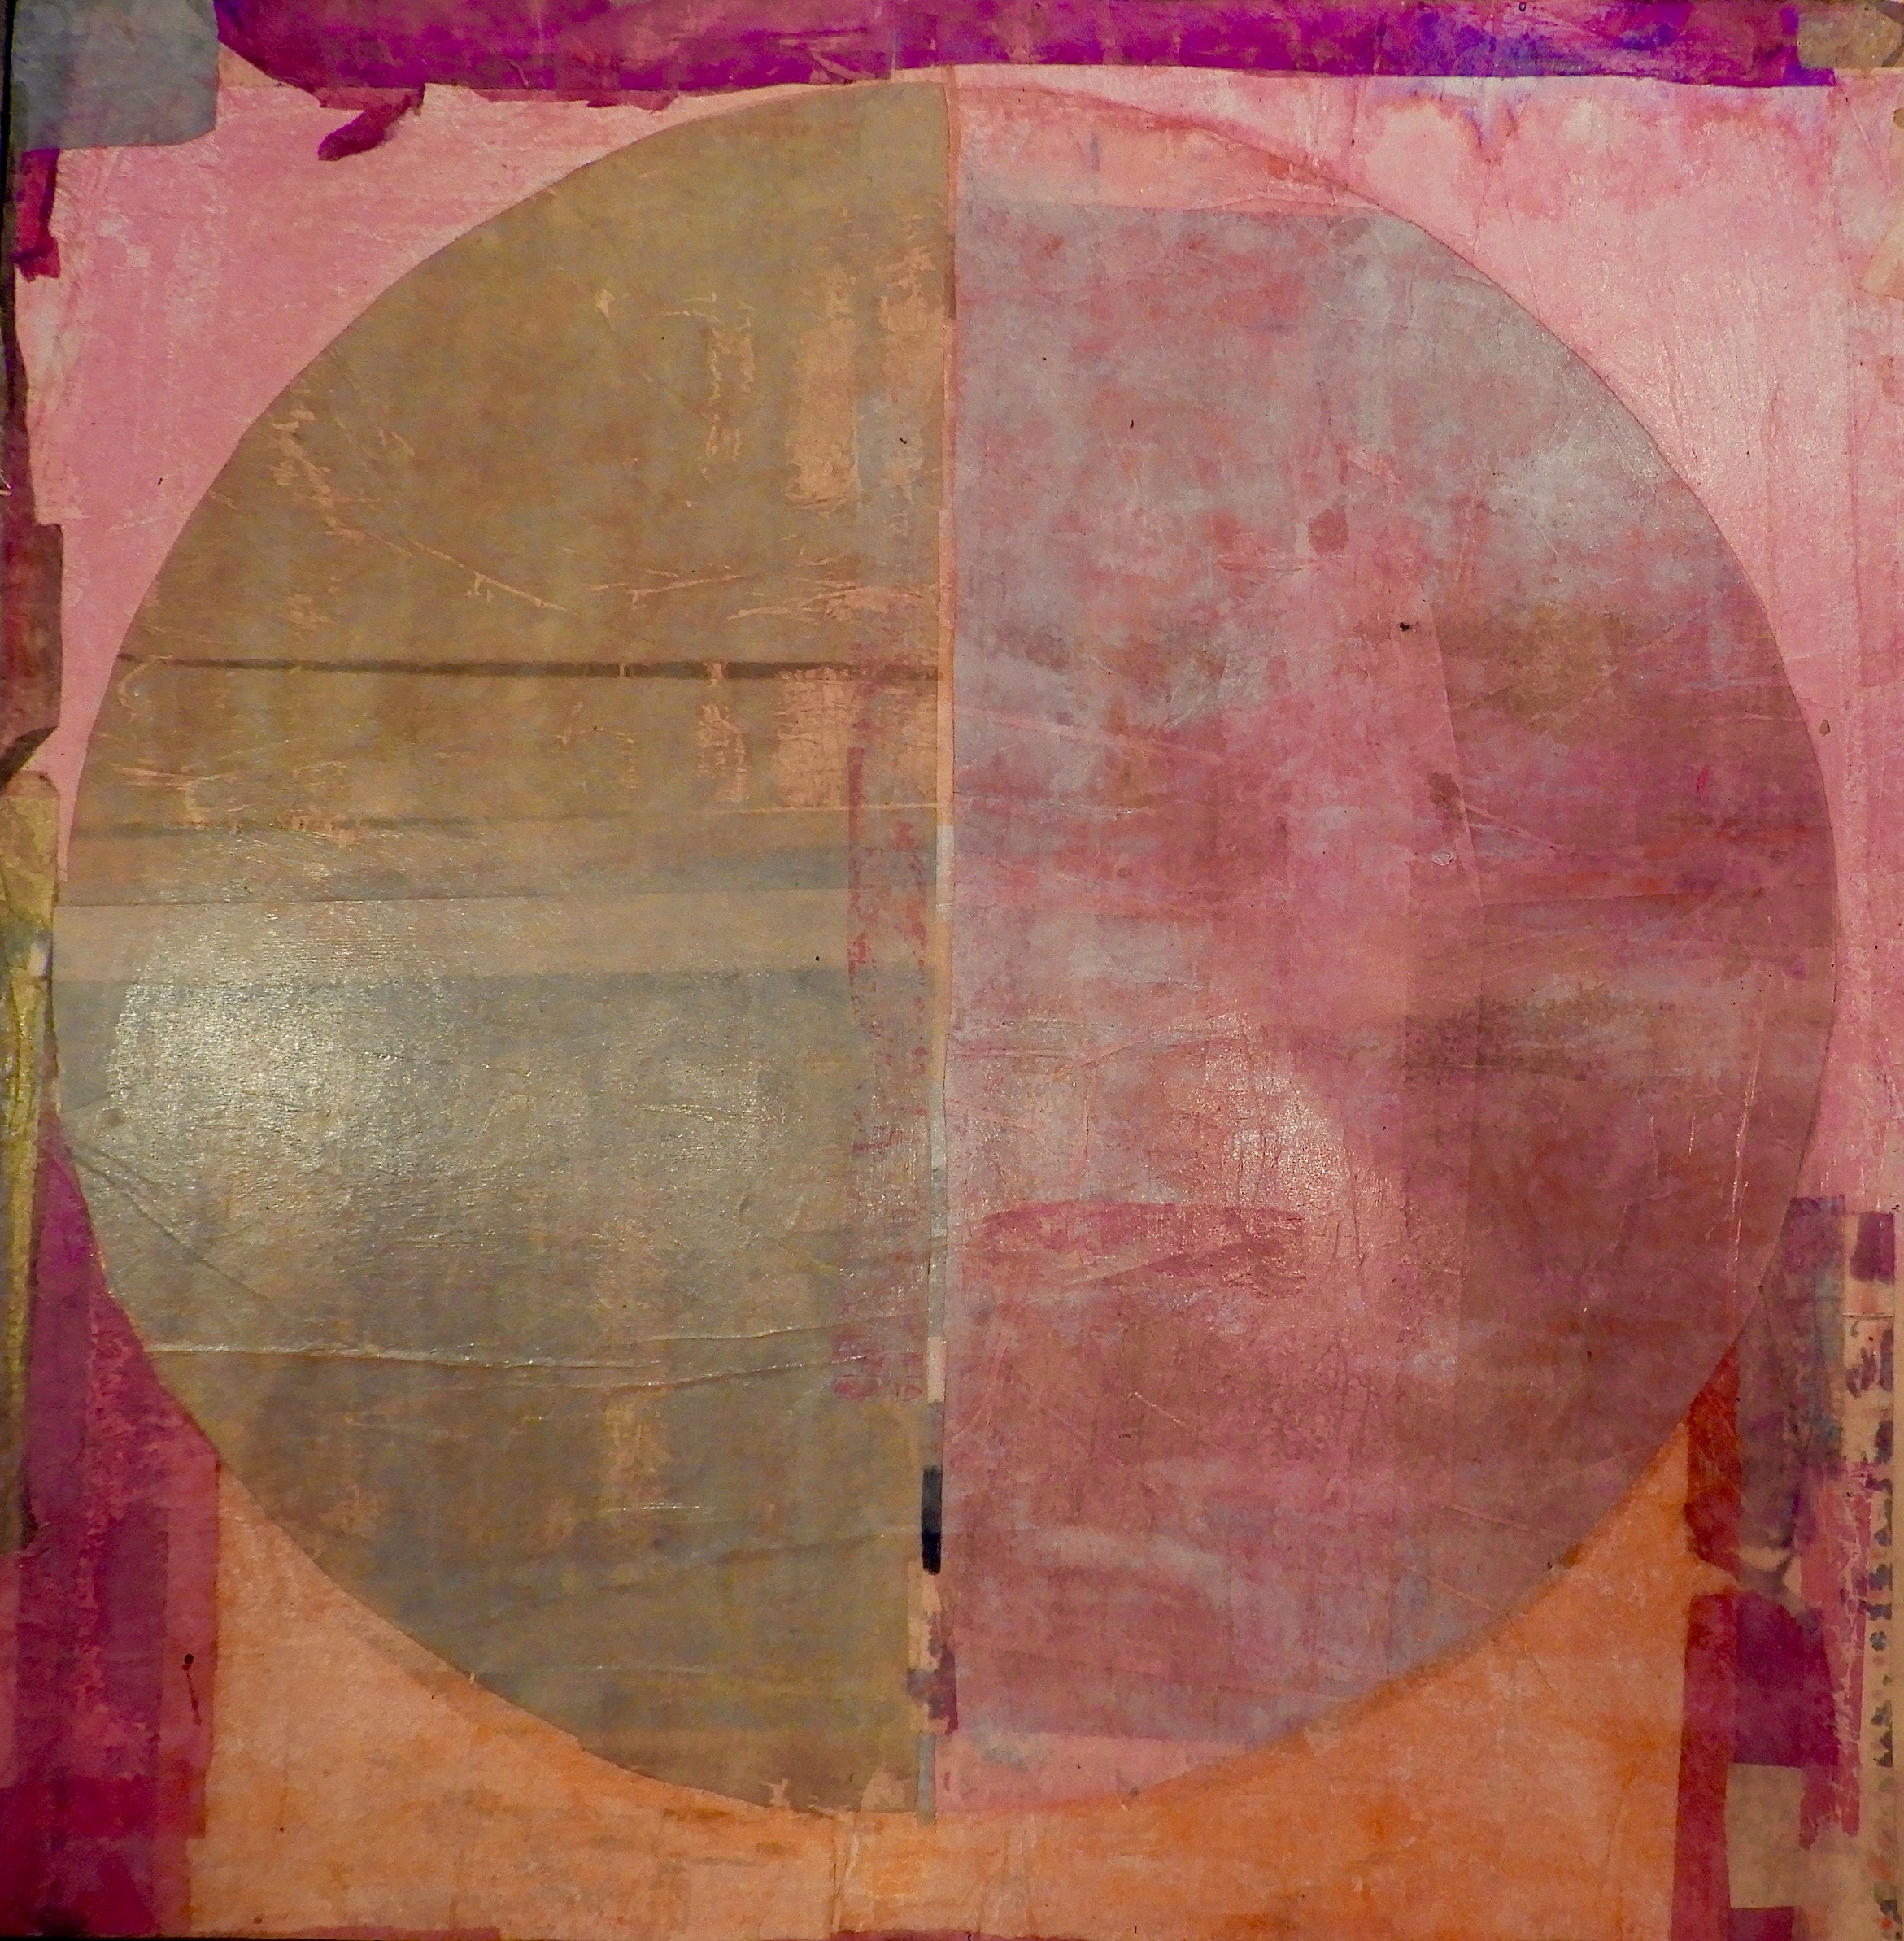 circles-series-collage-art-painters-approach